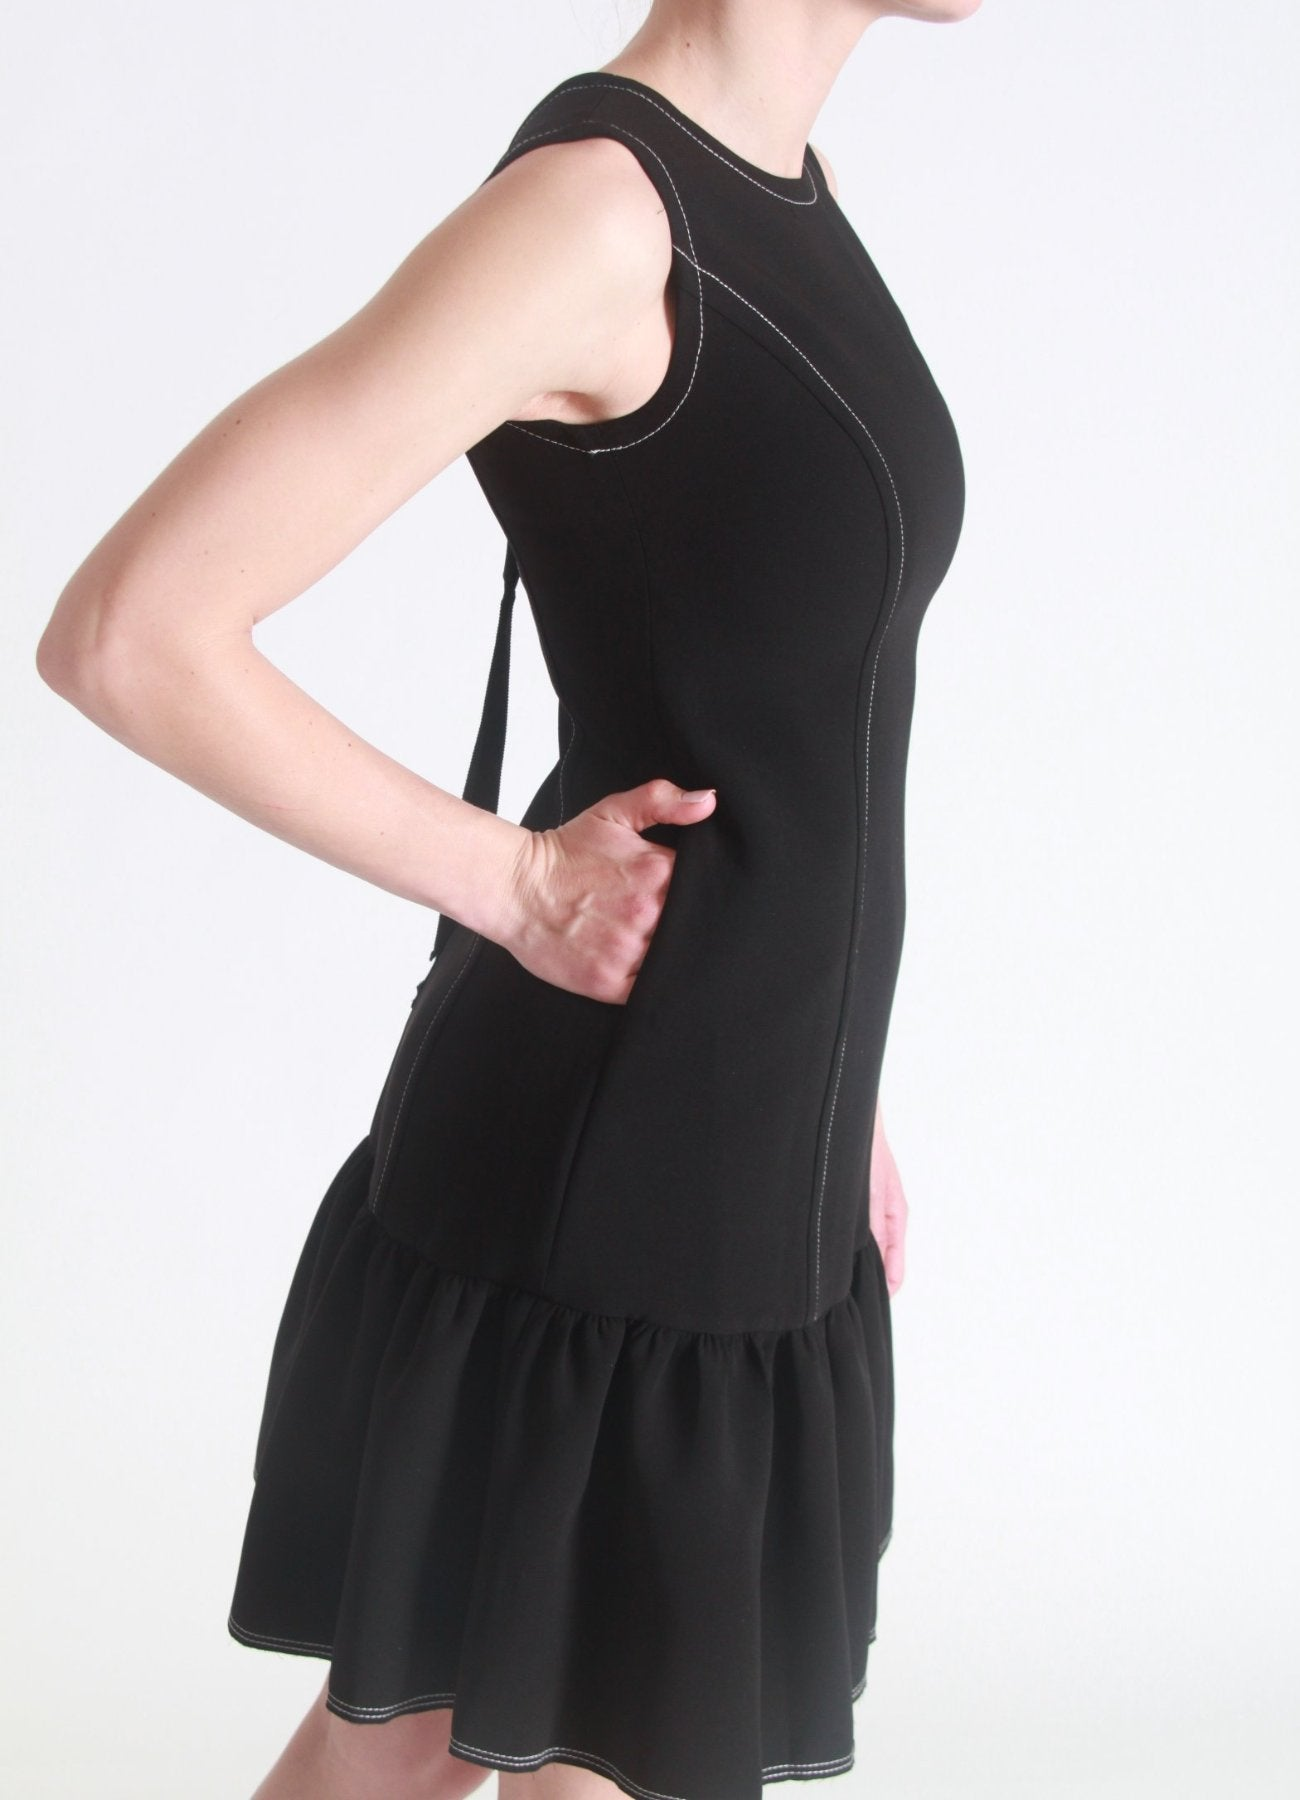 V-back peplum dress